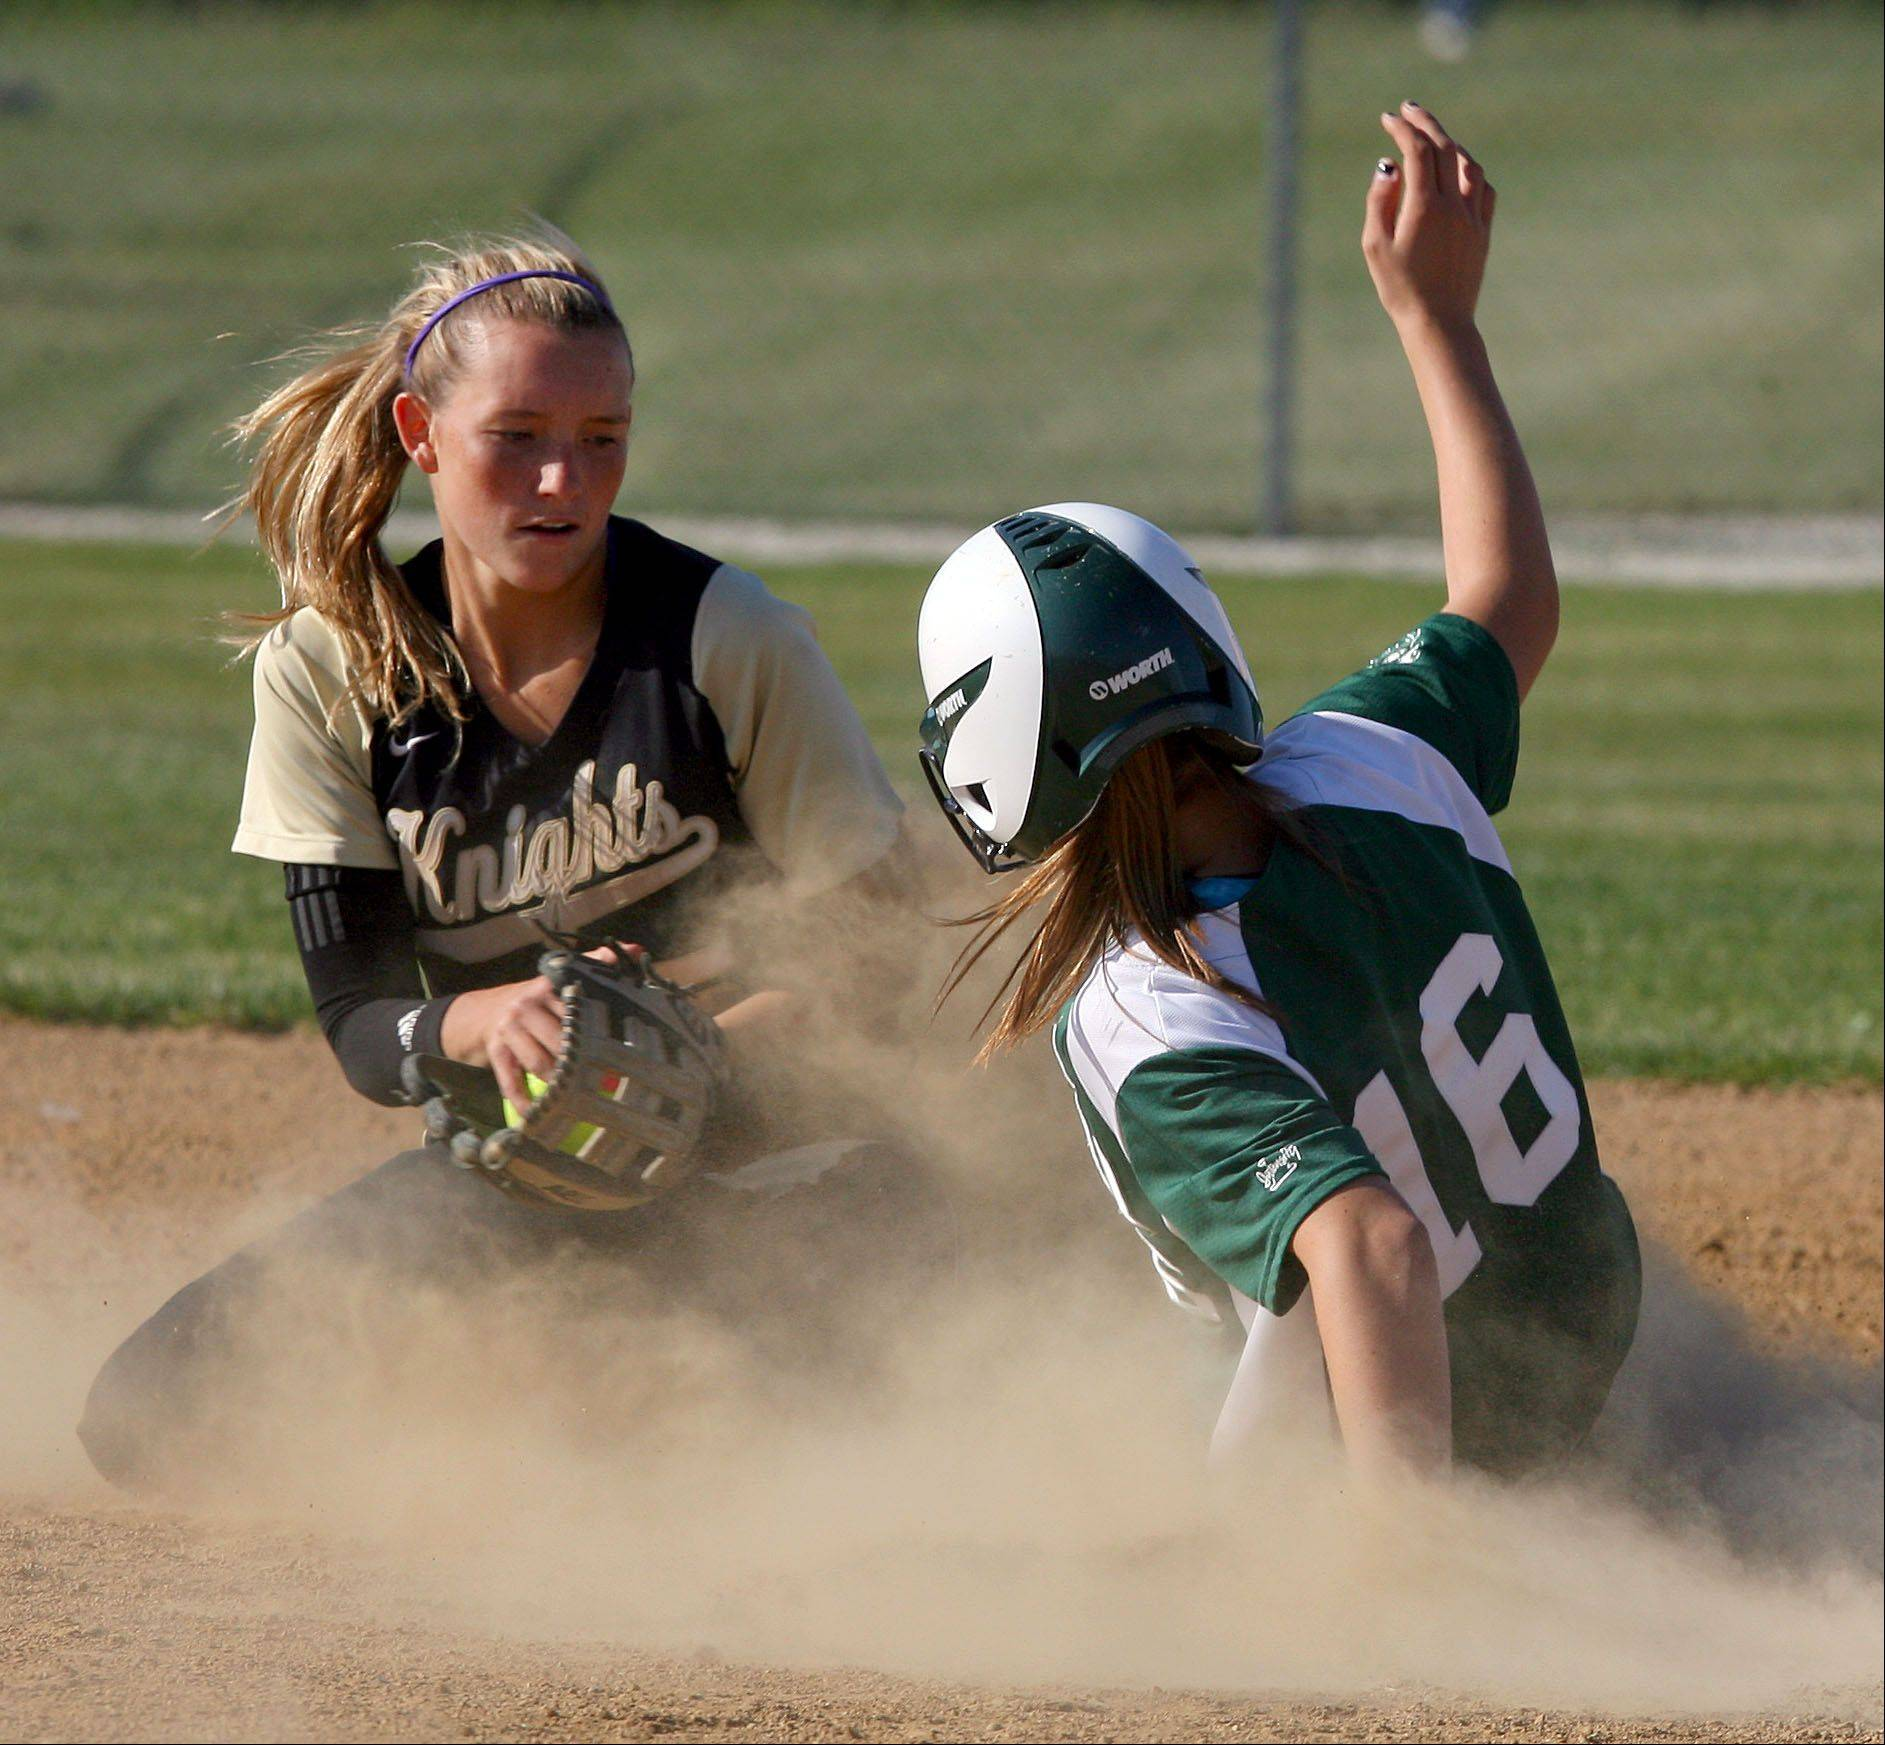 Grayslake North's Jordyn Bowen, left, tries to tag Grayslake Central's Caitlin Flary during Class 3A regional semifinal play last spring at Antioch.